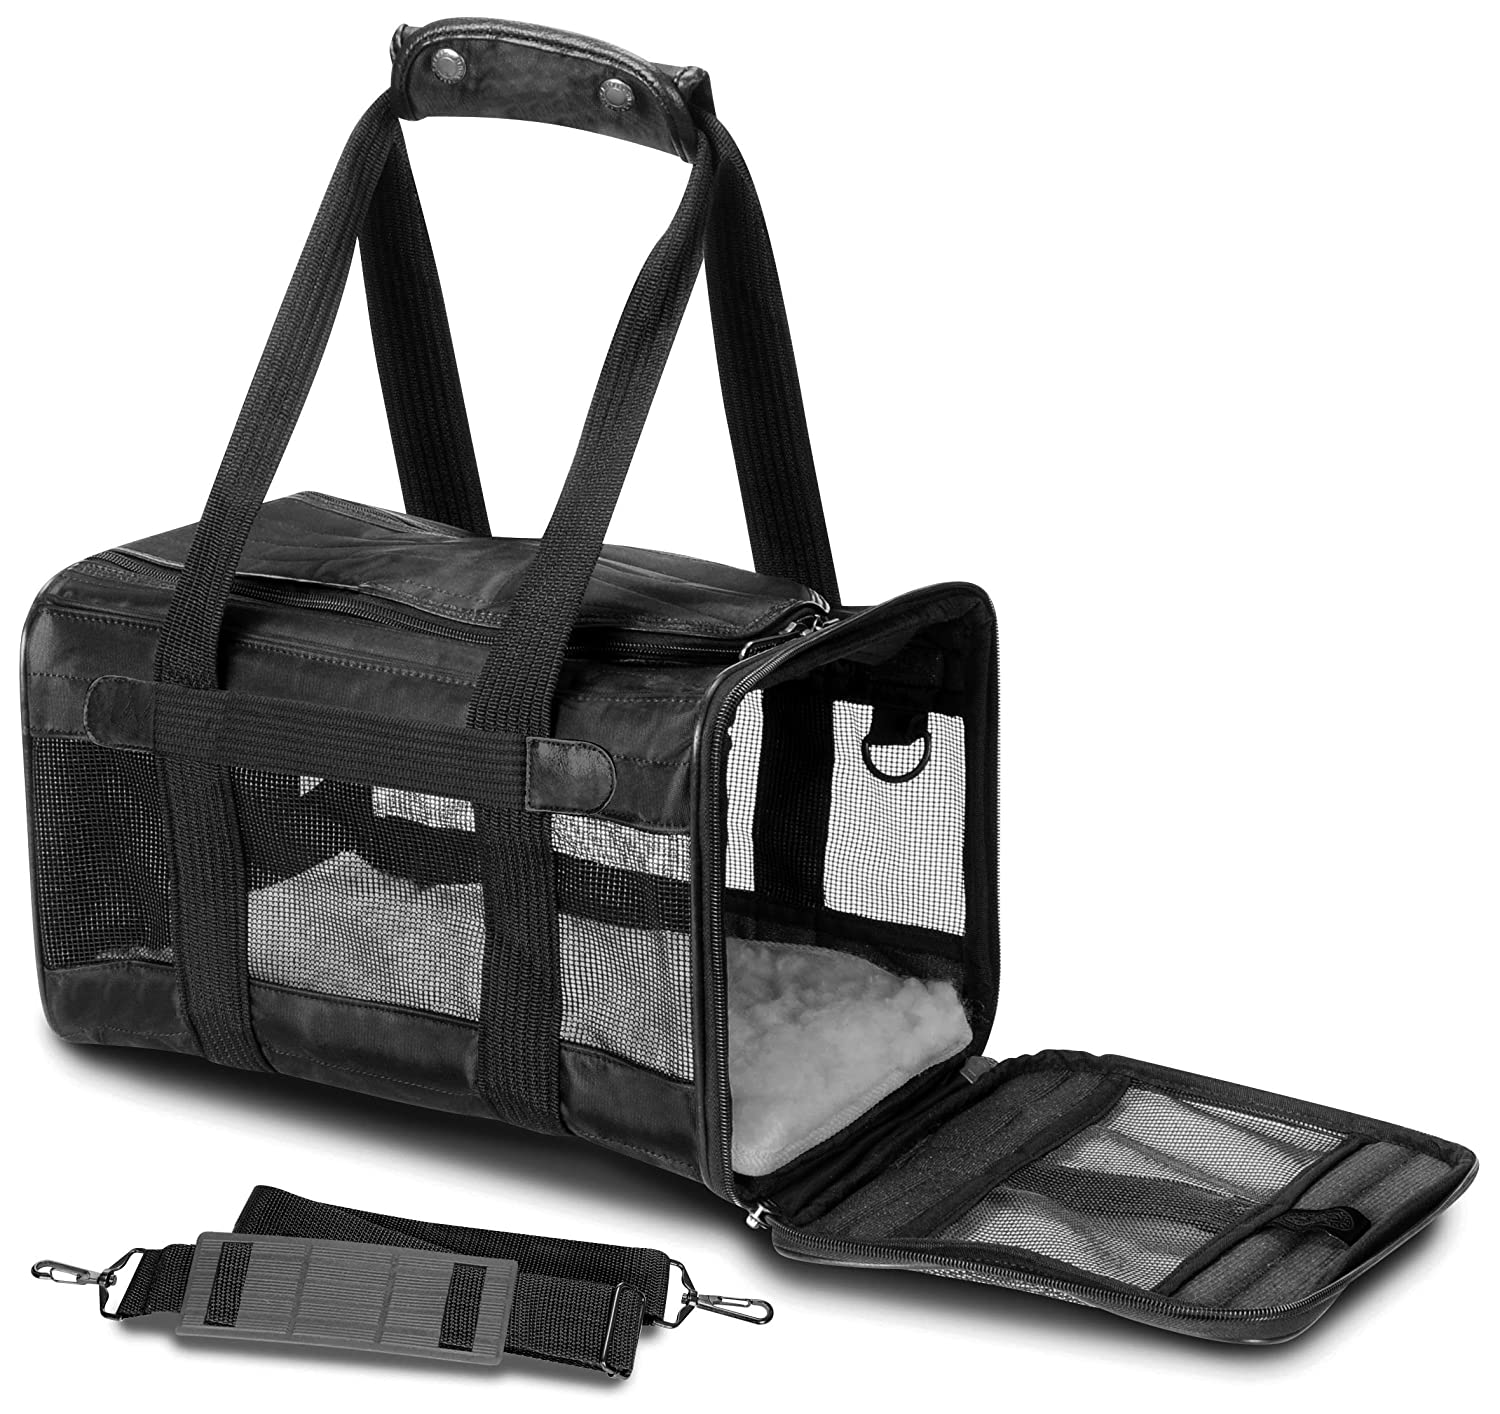 Black Small Black Small Sherpa 55531 Original Deluxe Pet Carrier Small with Black Trim